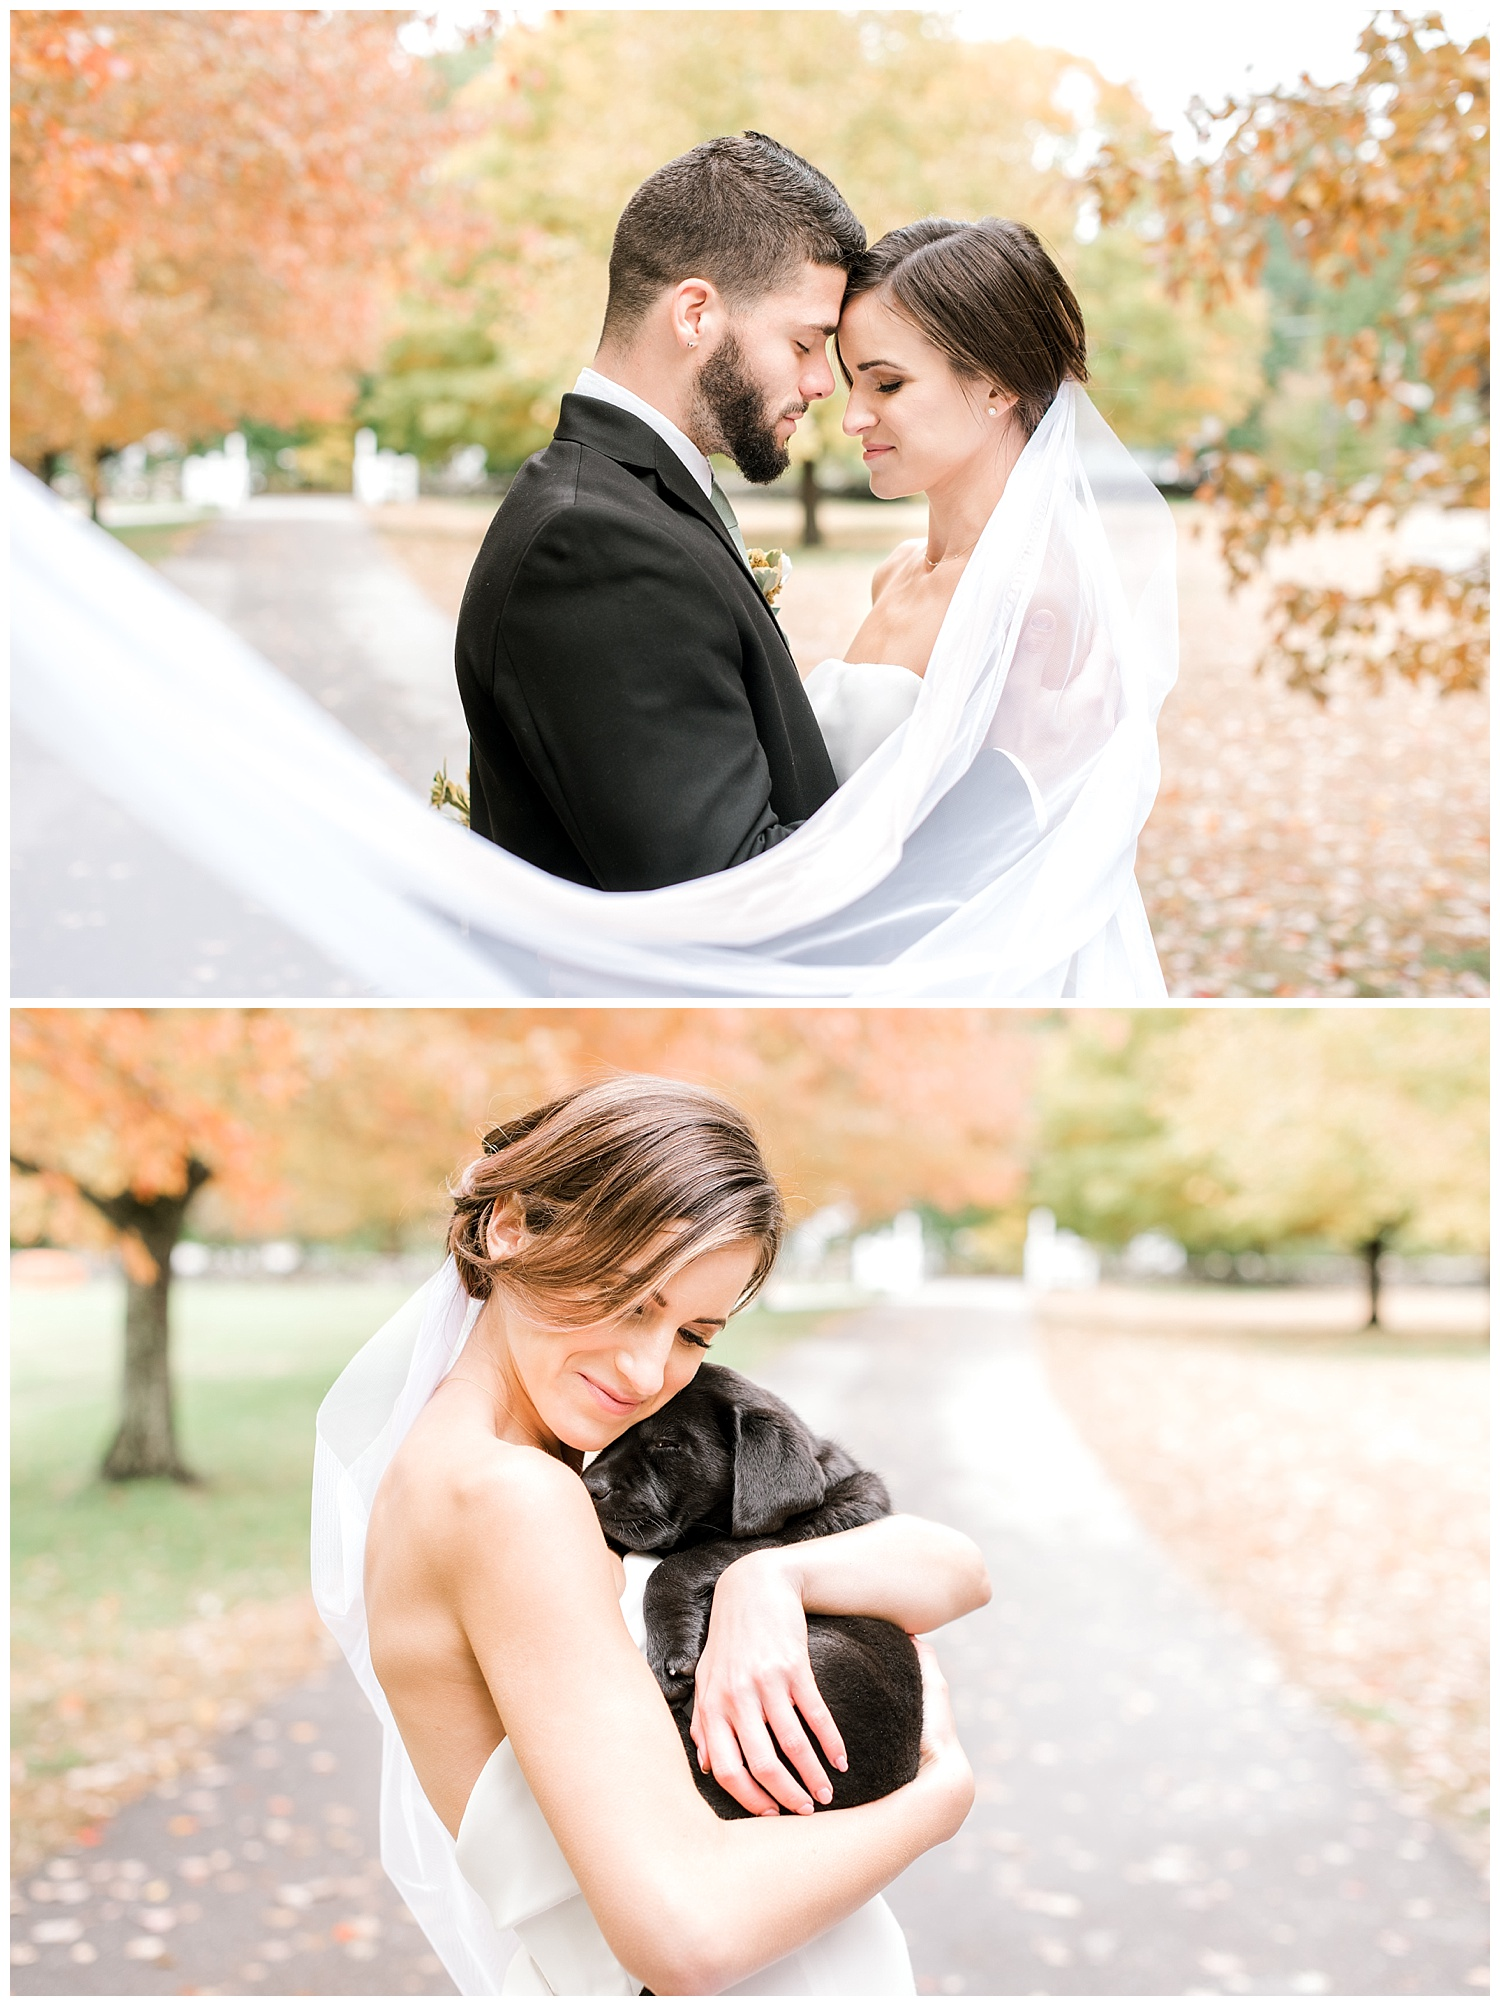 pompositticut-farm-fall-wedding-photography-hudson-massachusetts-photo-17.jpg